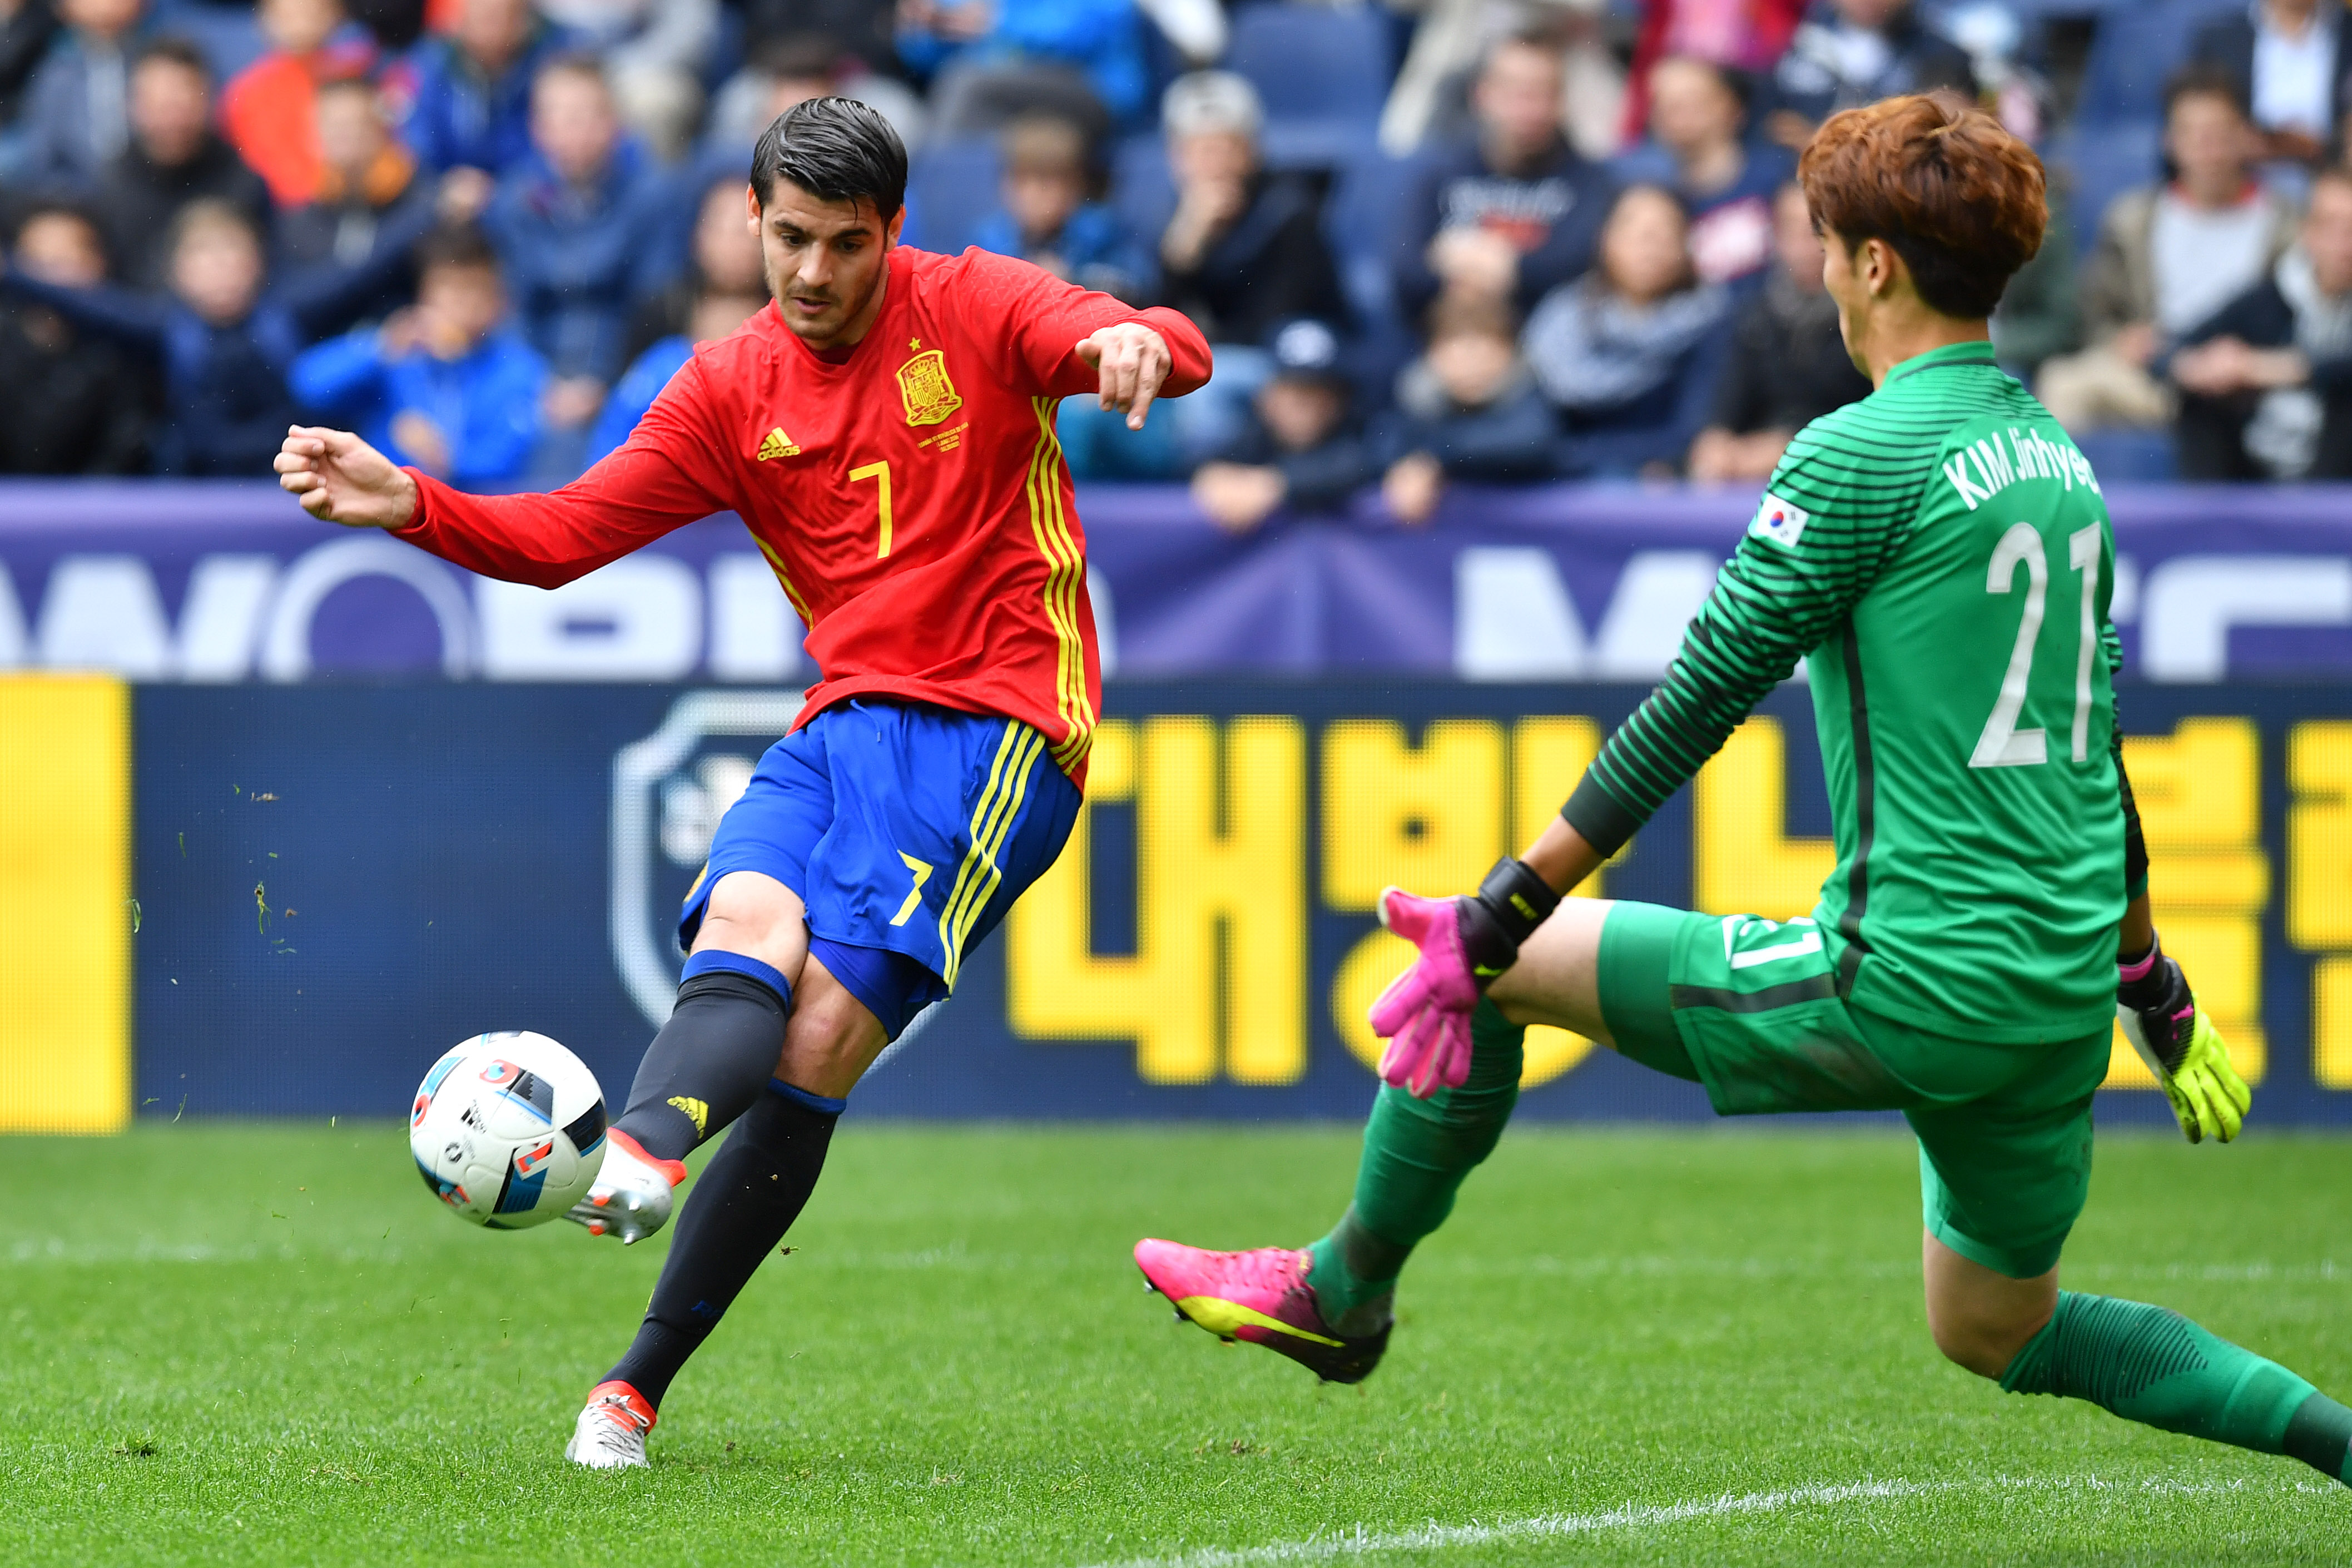 Spain's forward Alvaro Morata and South Korea's goalkeeper Kim Jin-Hyeon vie for the ball during the Euro 2016 friendly football match between Spain and South Korea at Red Bull stadium in Salzburg, Austria on June 1, 2016. / AFP / WILDBILD        (Photo credit should read WILDBILD/AFP/Getty Images)